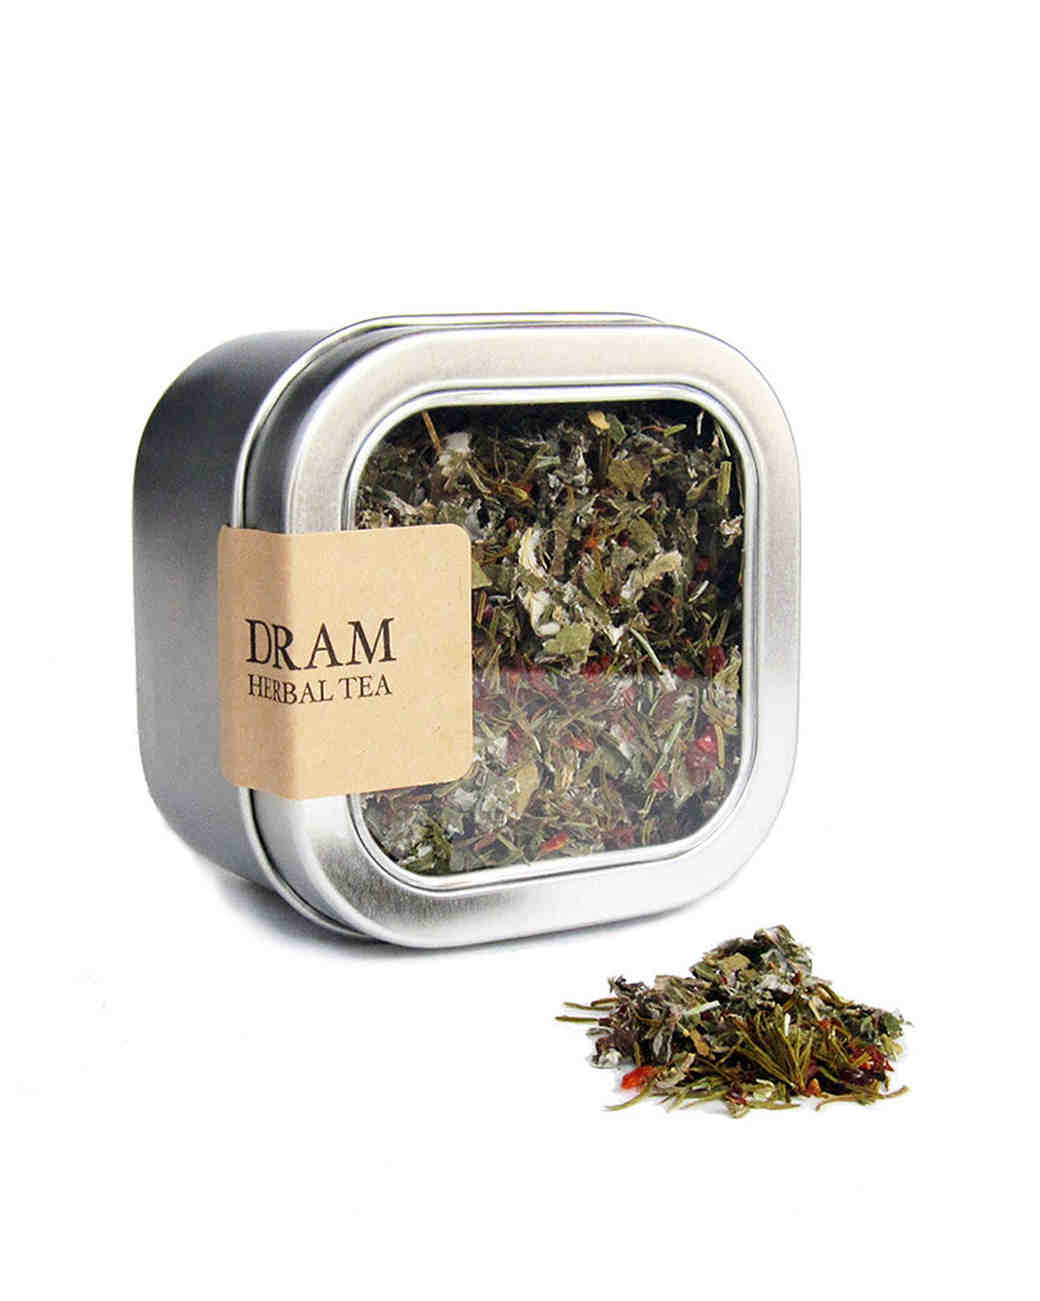 dram-woodland-tea-0216.jpg